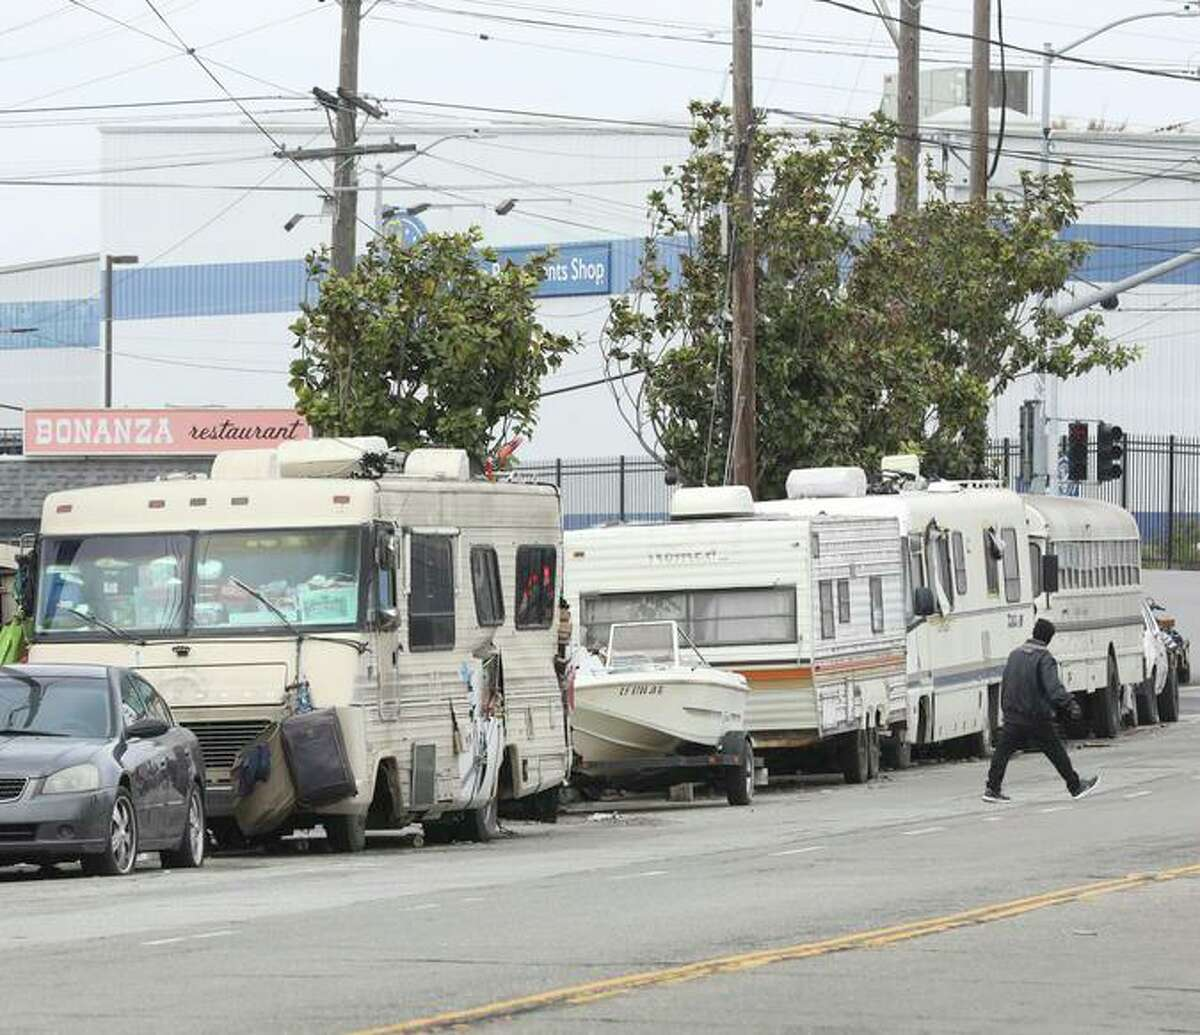 San Francisco wants to open a new secure site for 150 unhoused individuals to park RVs and cars in Candlestick State Park to support a growing contingent of people sleeping in vehicles.